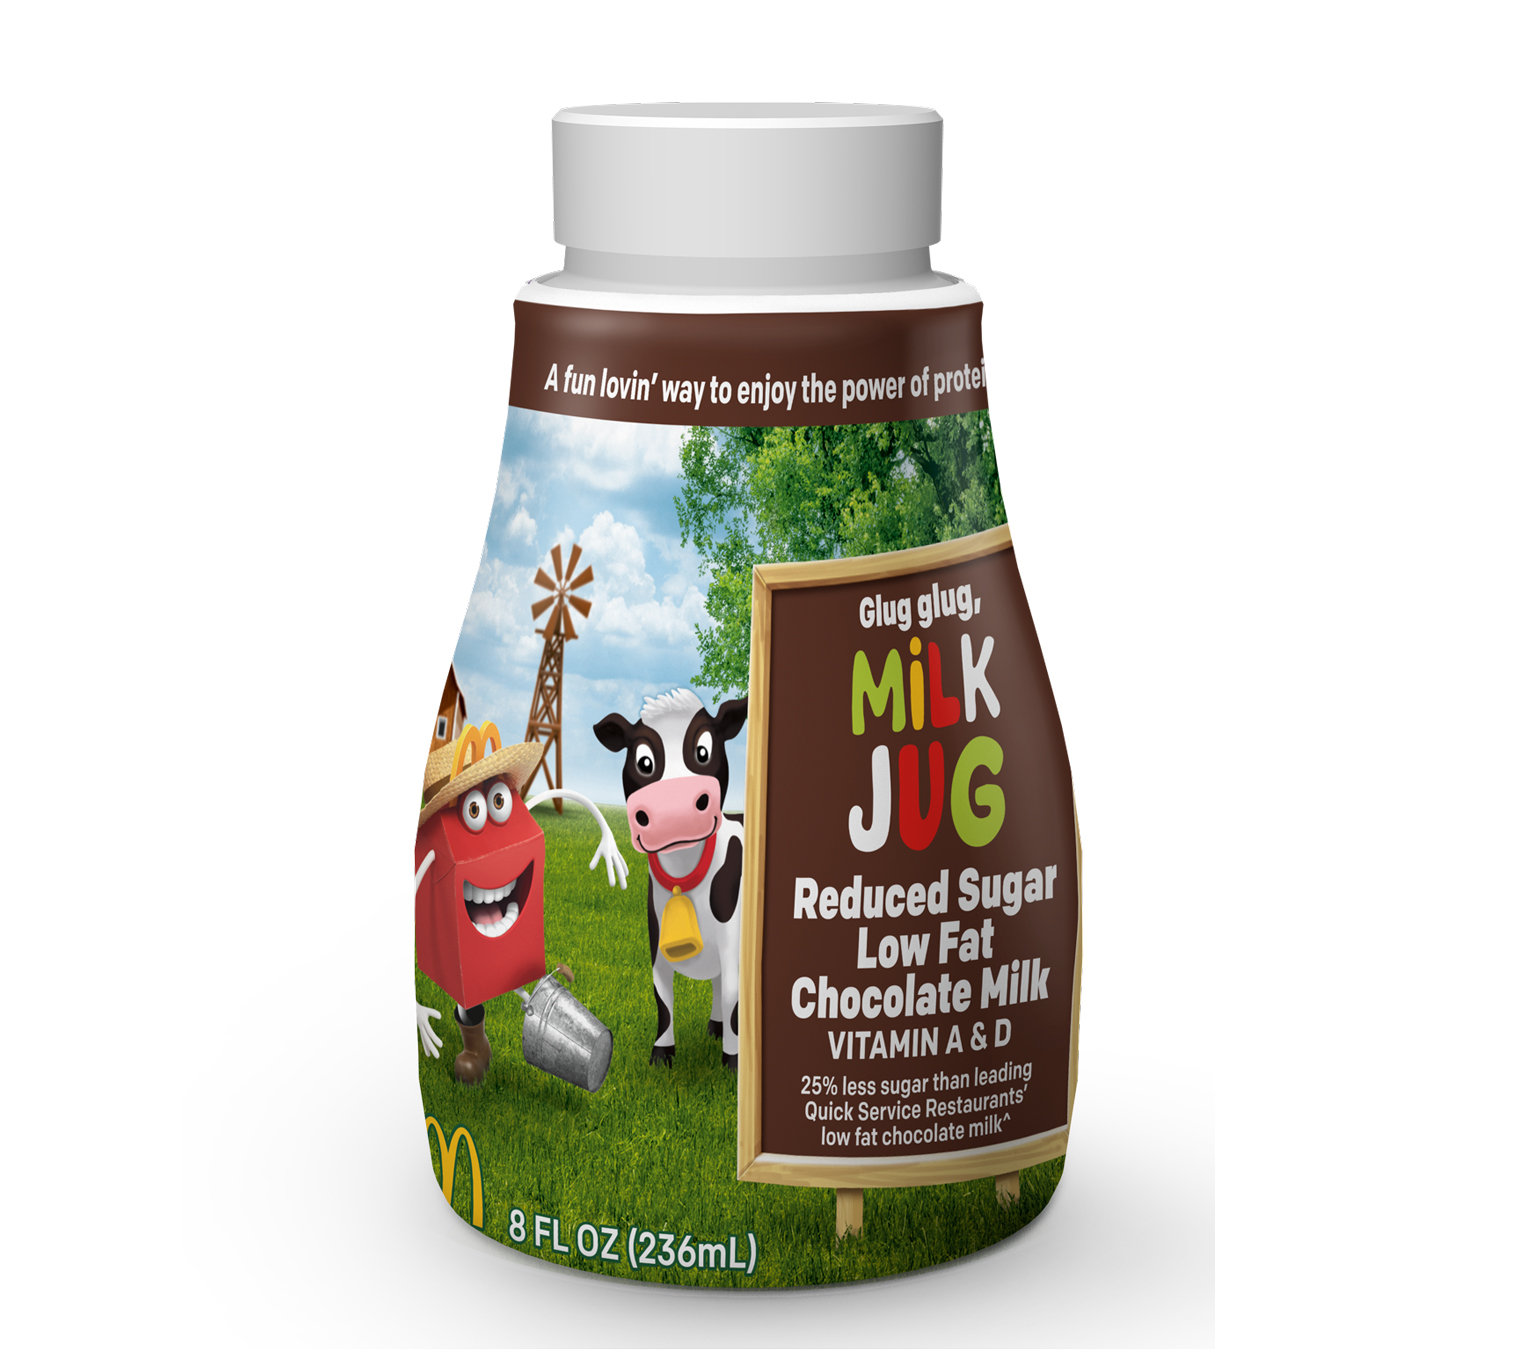 new formulation of McDonald's chocolate milk